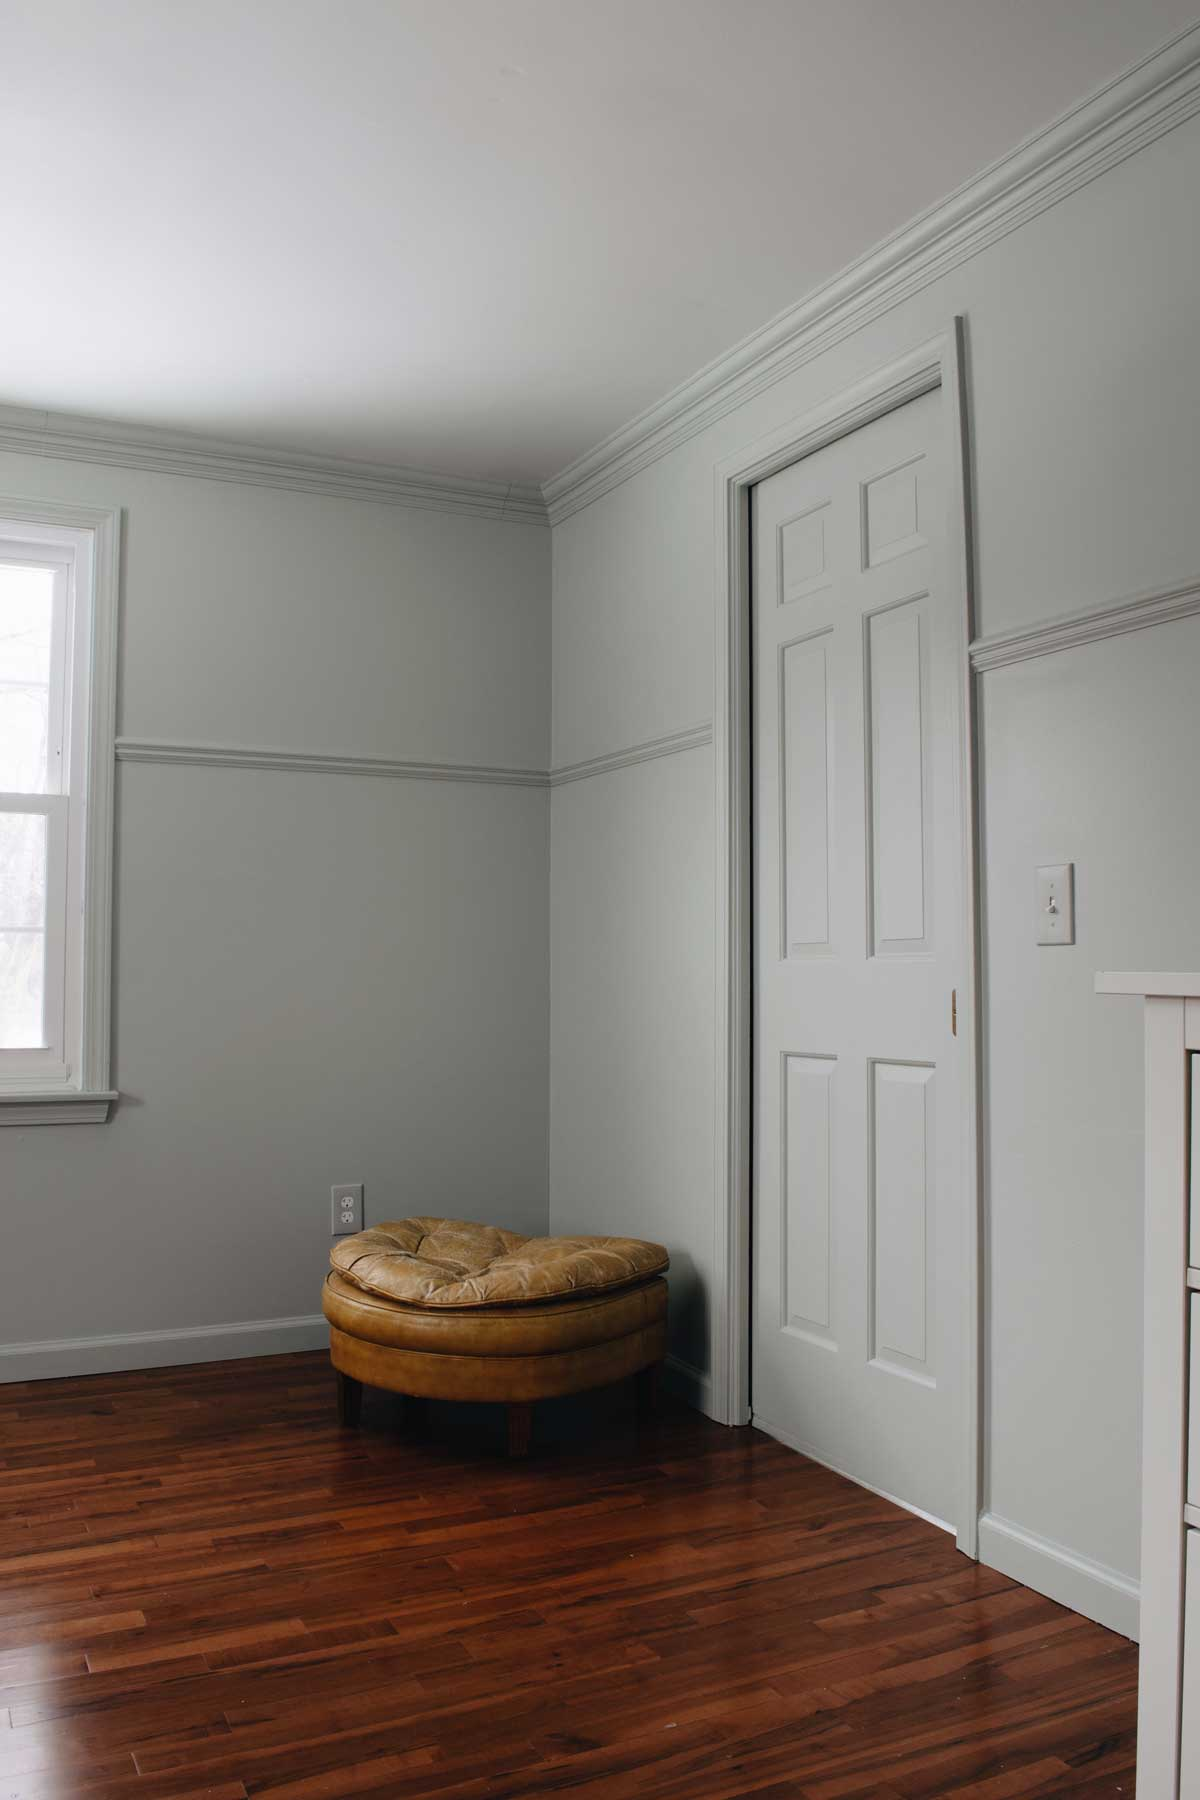 Rachel Schultz Painting Walls And Trim The Same Color